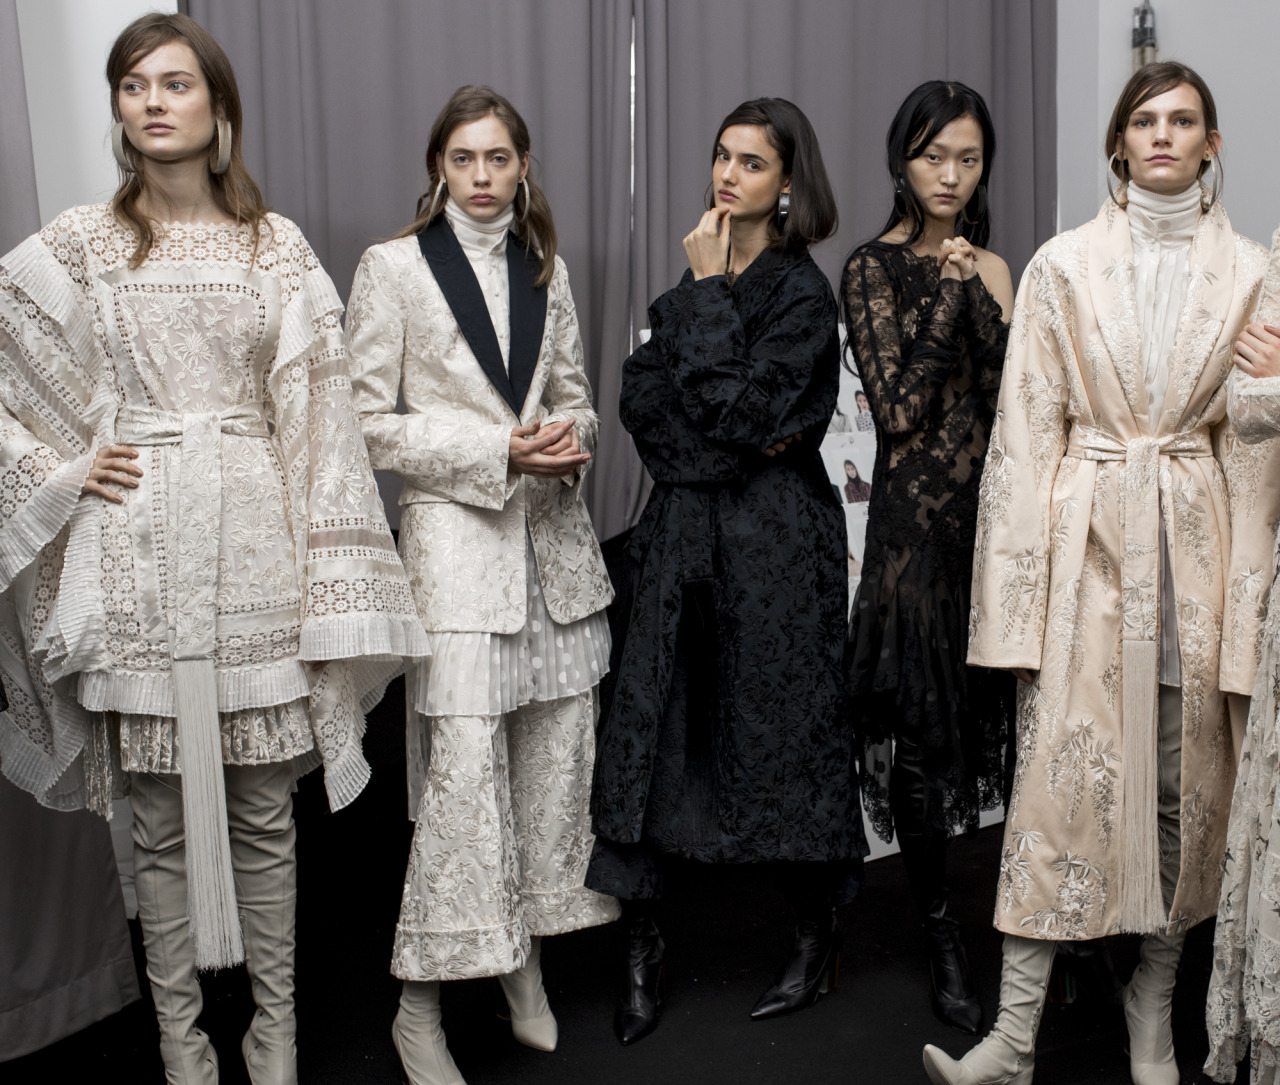 NYFW | FALL 17: BEHIND THE SCENES